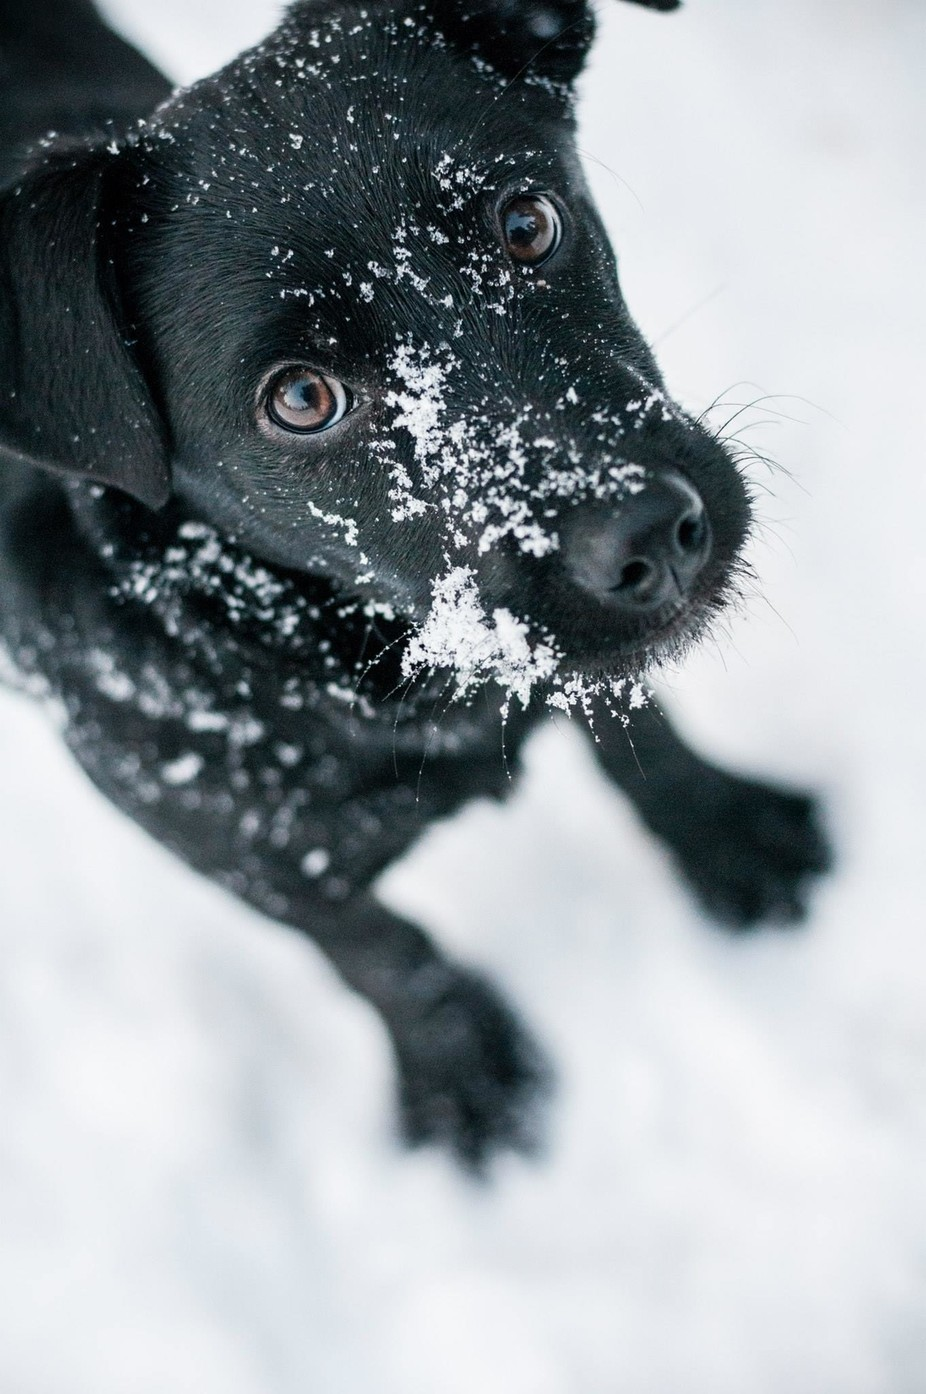 Puppers in Snow by ElishaIsabelle - Image Of The Month Photo Contest Vol 33